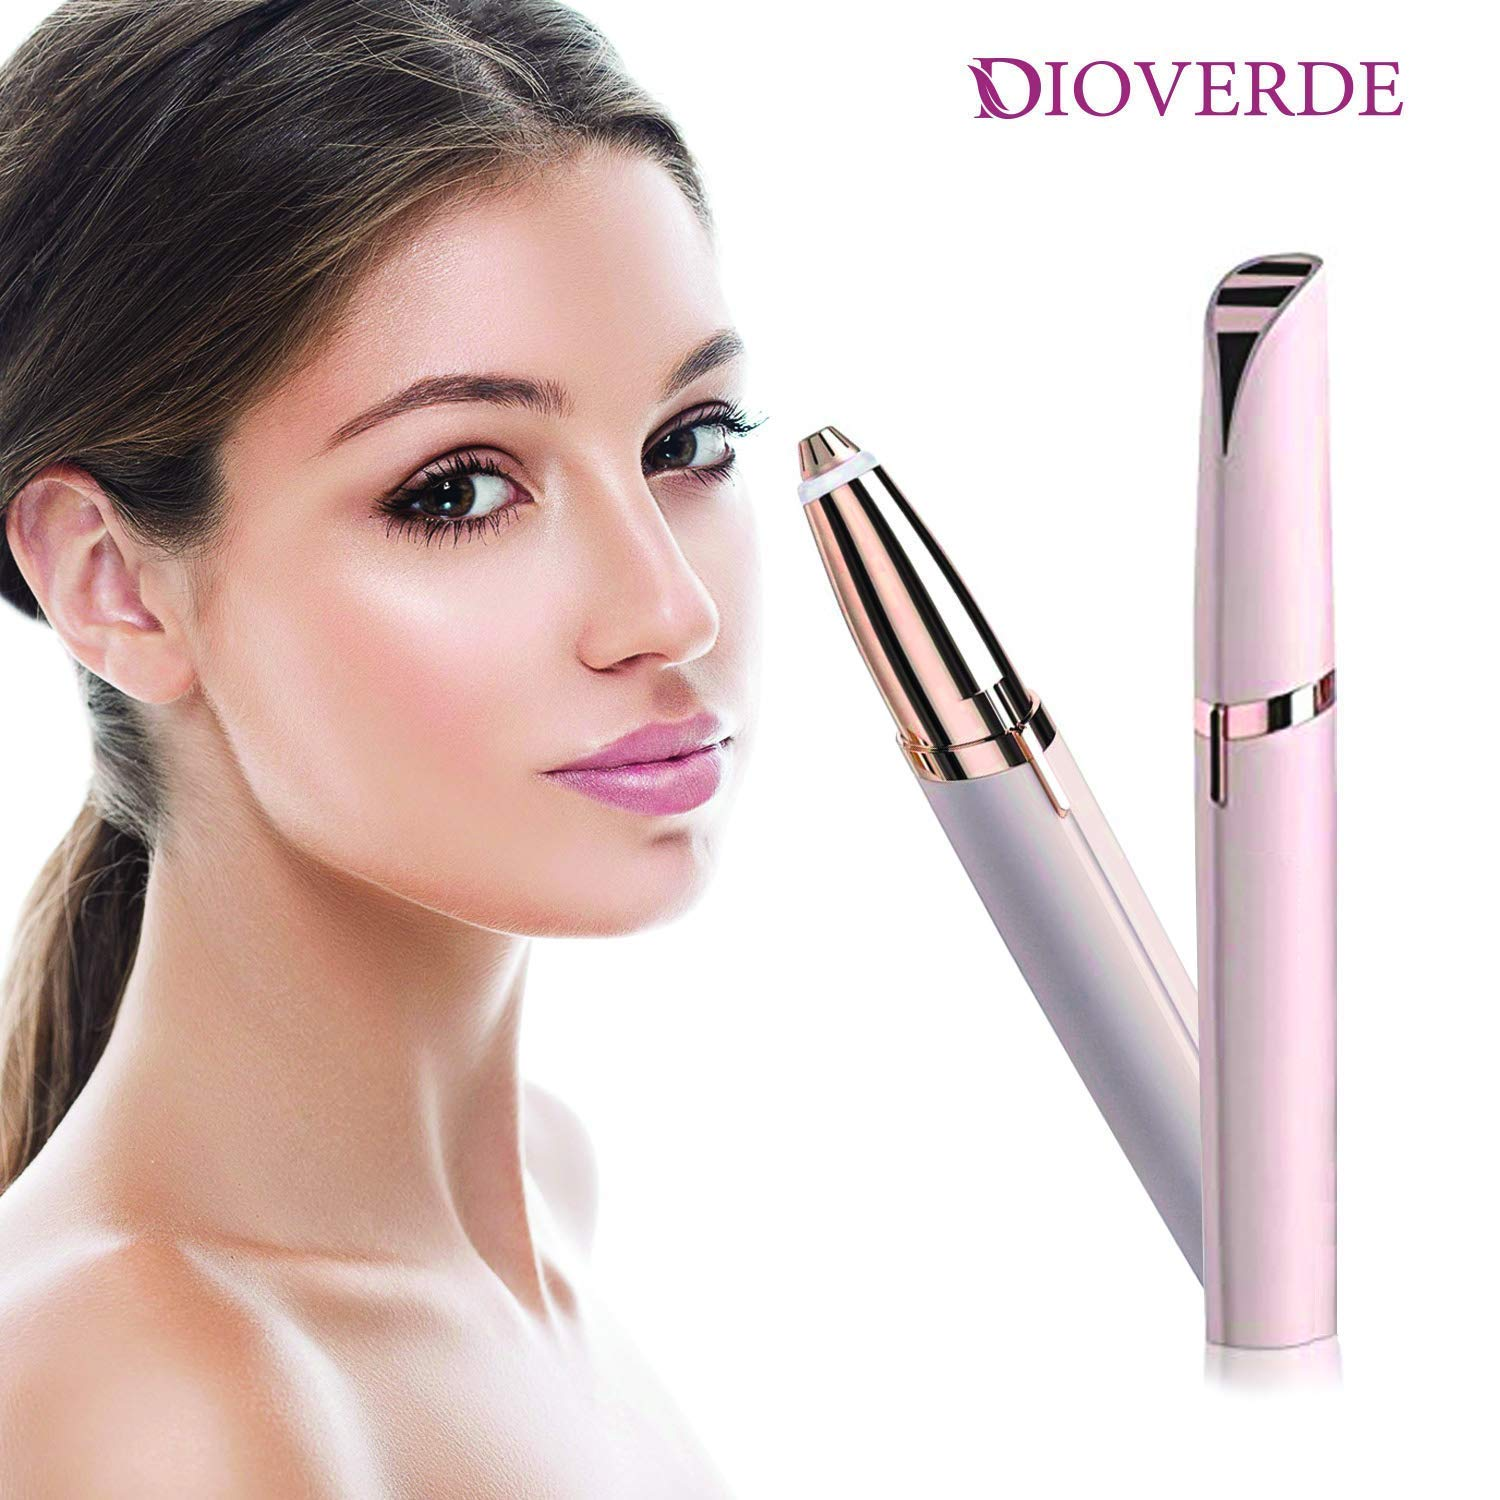 Electric Eyebrow Hair Remover, No Pain Electric Eyebrow Remover, As Seen on TV Eyebrow Remover, the Best Electric Eyebrow Hair Remover in 2018